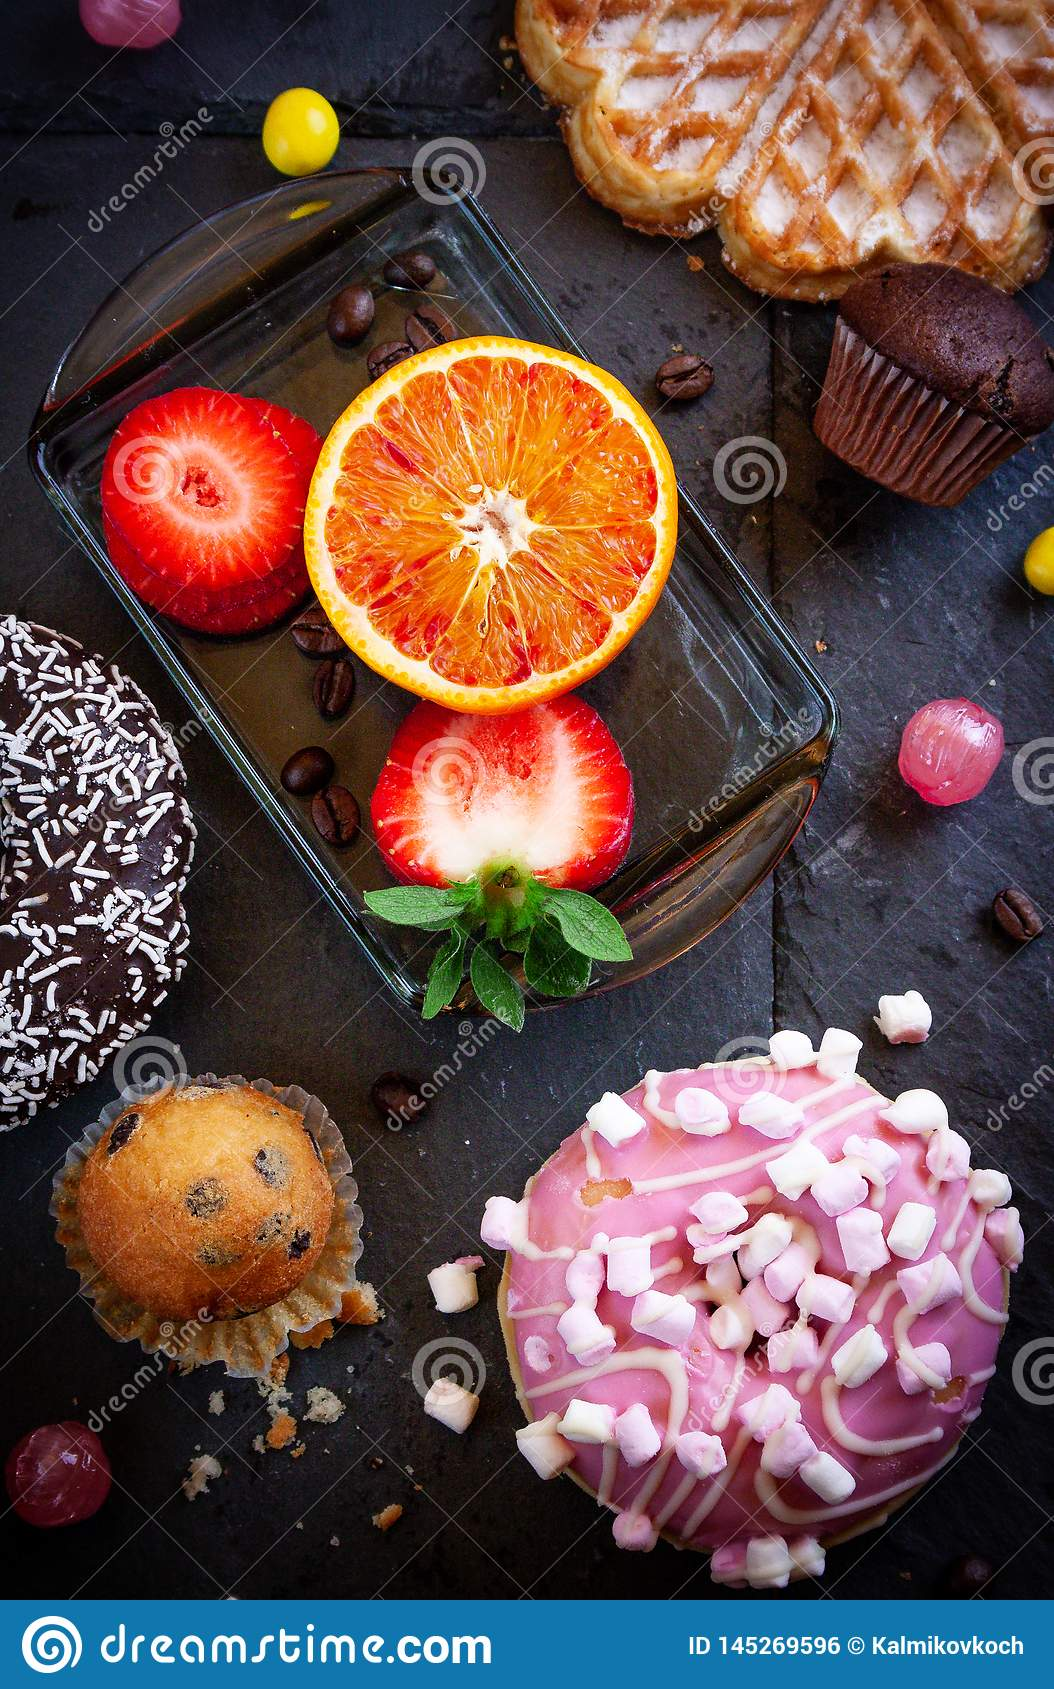 Donuts and muffins with fruit on black stone background.